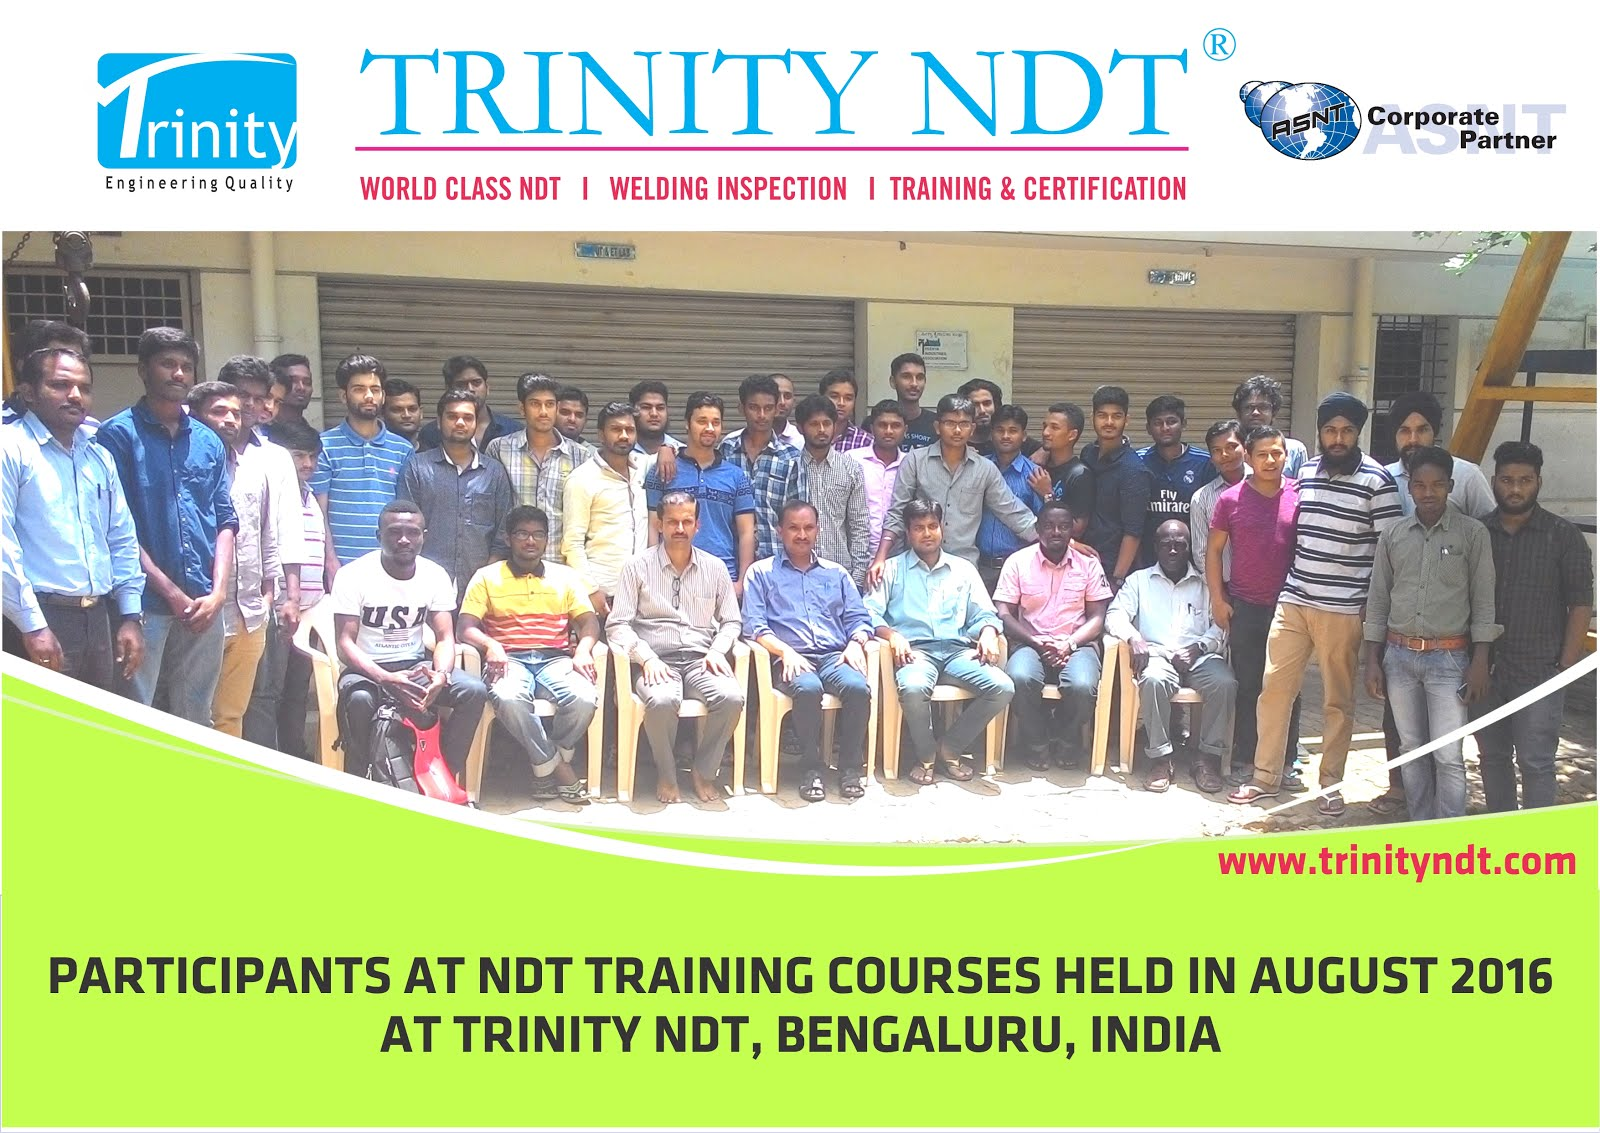 August 2016 Participants at Trinity NDT Certification Couses